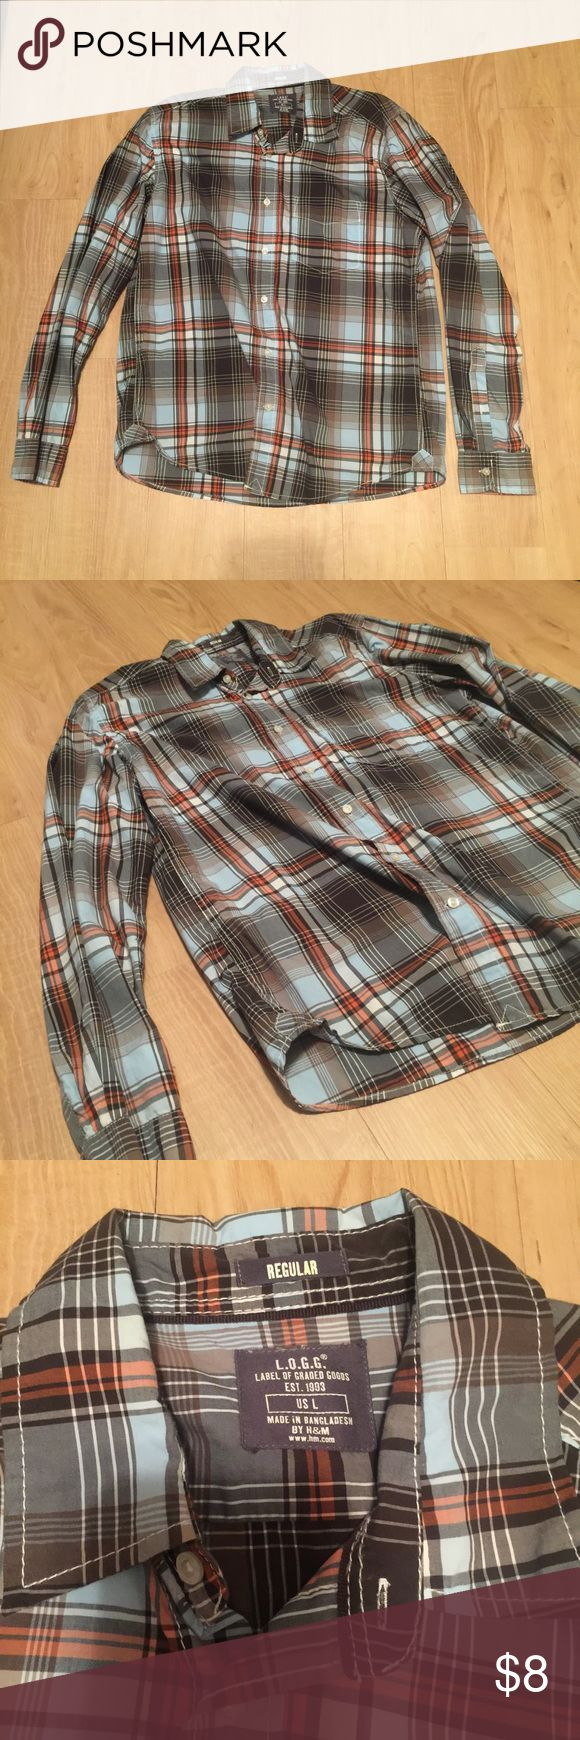 L.O.G.G. Men's Plaid Shirt Great condition, worn only once. Large and fits like a large. Bundle to save! No rips, tears or defects! L.O.G.G. Shirts Casual Button Down Shirts